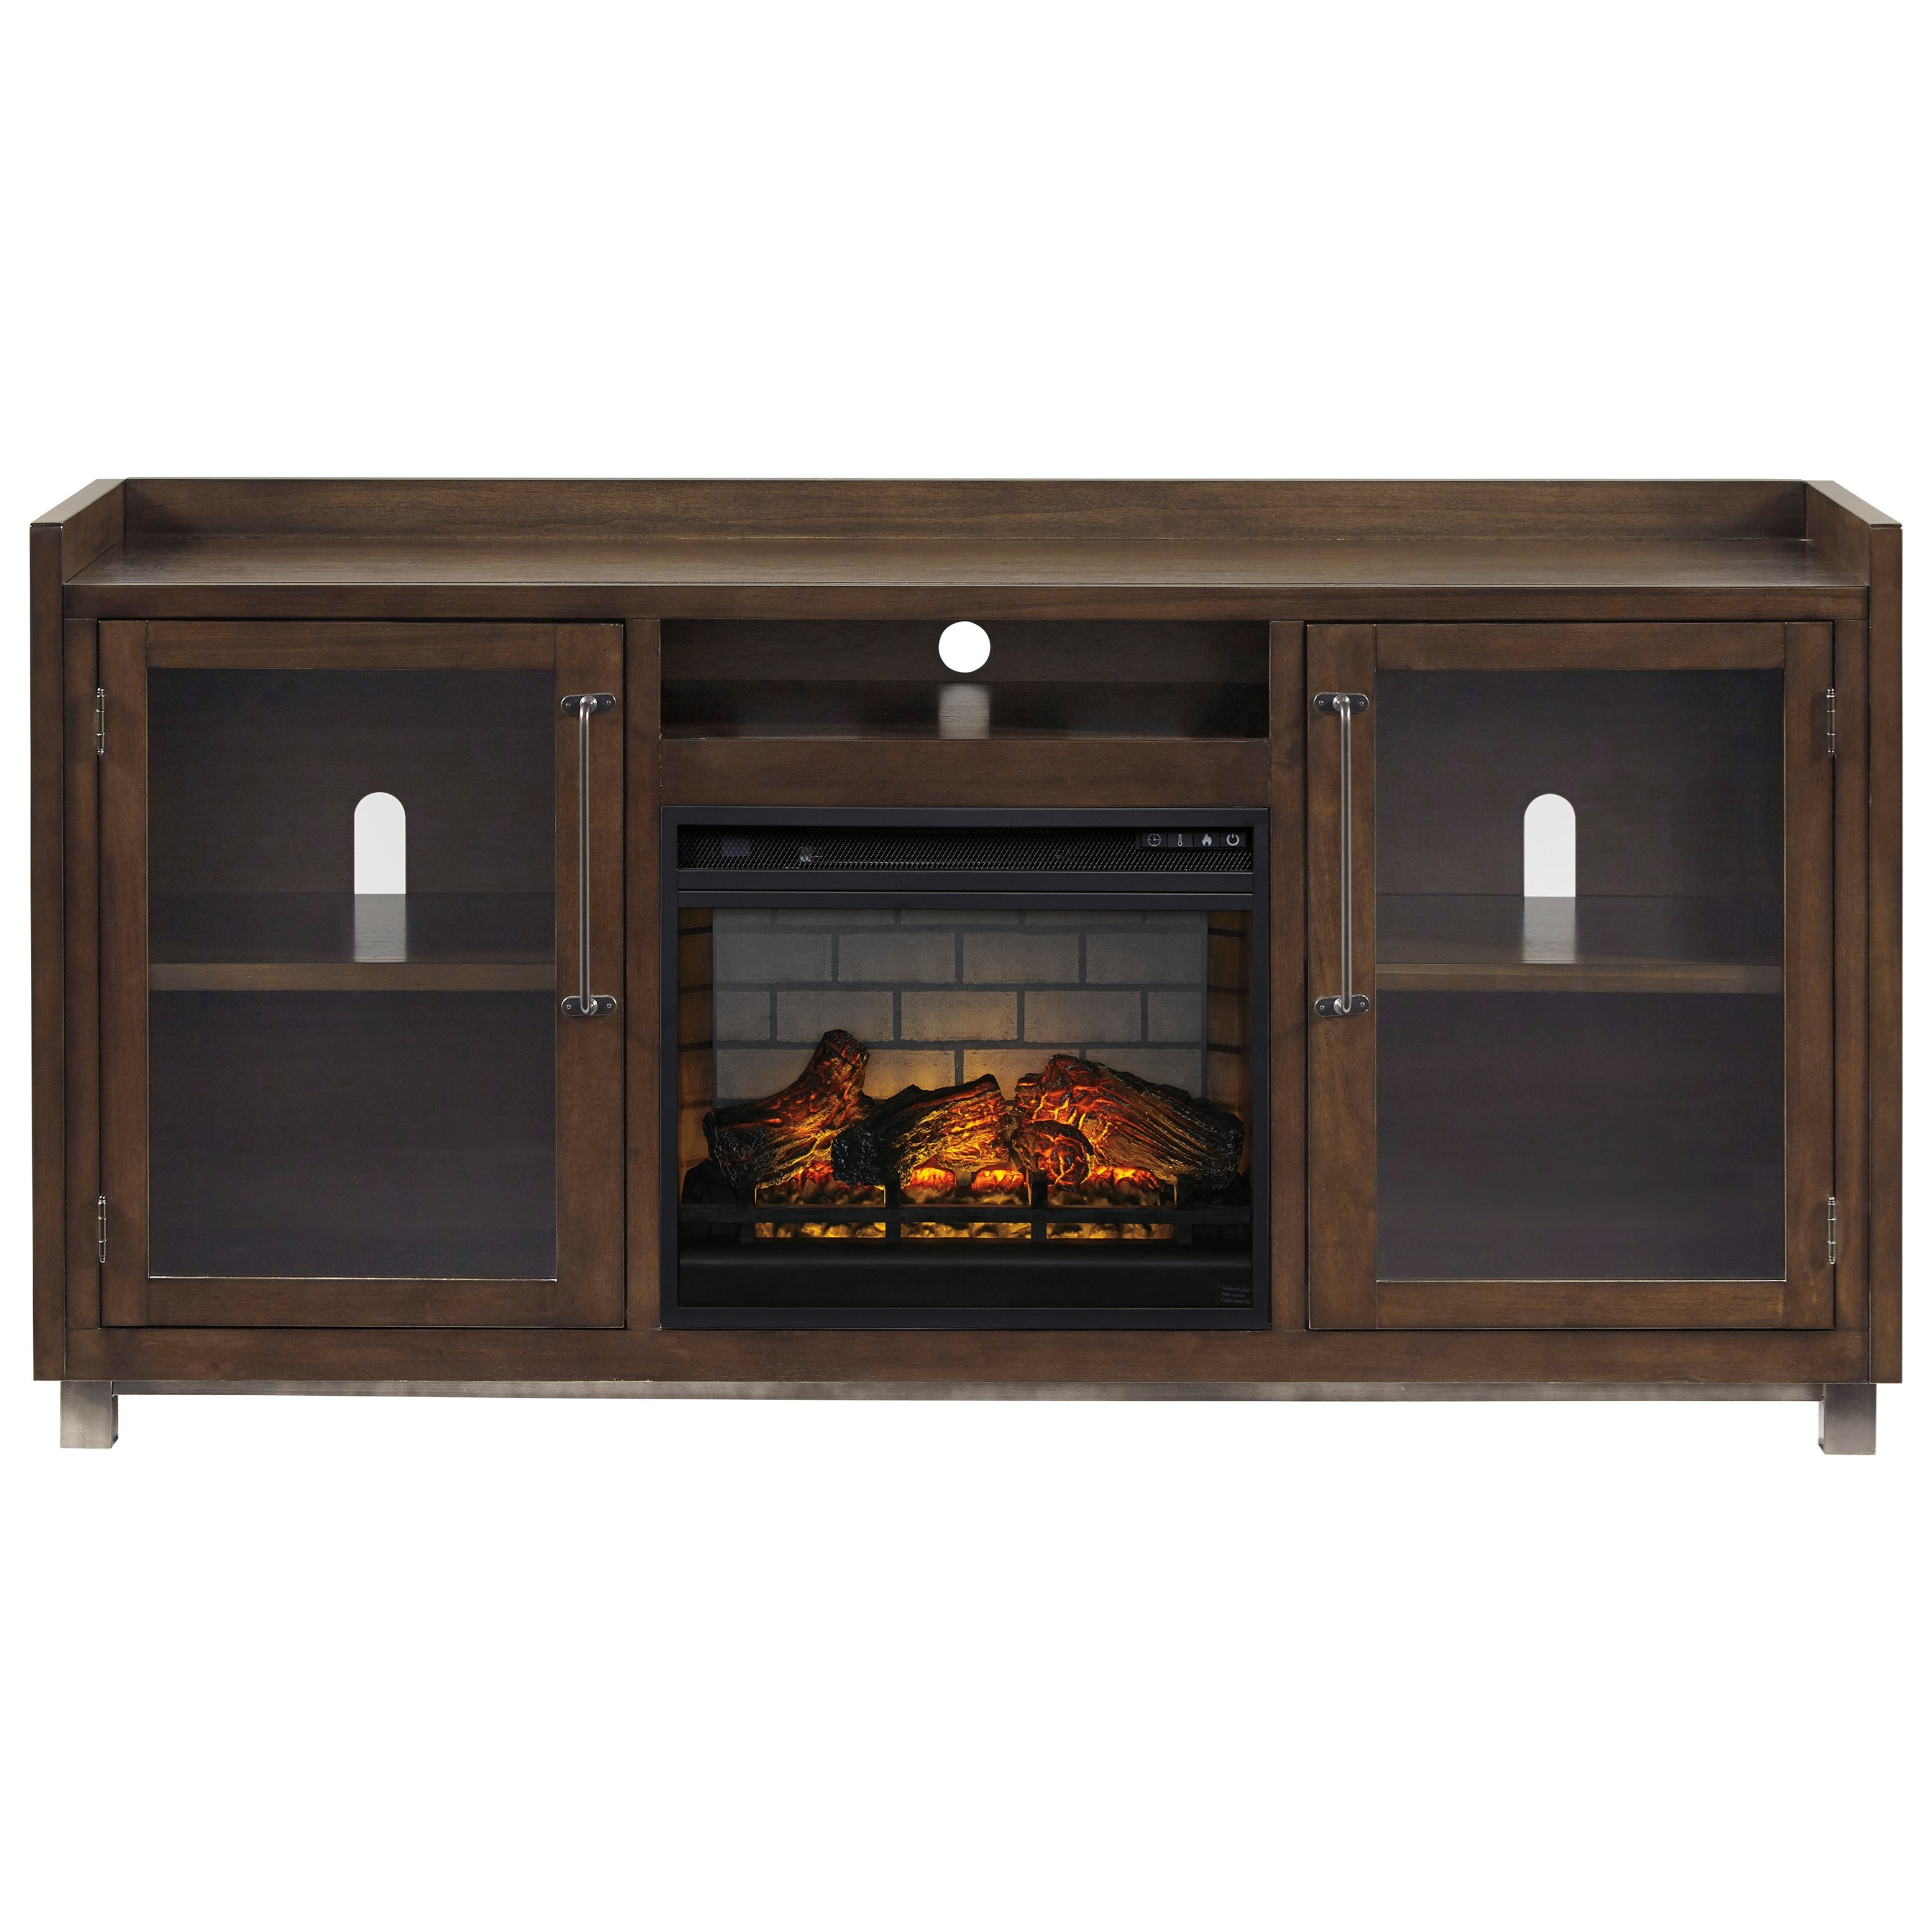 Starmore XL TV Stand w/ Fireplace by Signature Design by Ashley at Zak's Warehouse Clearance Center